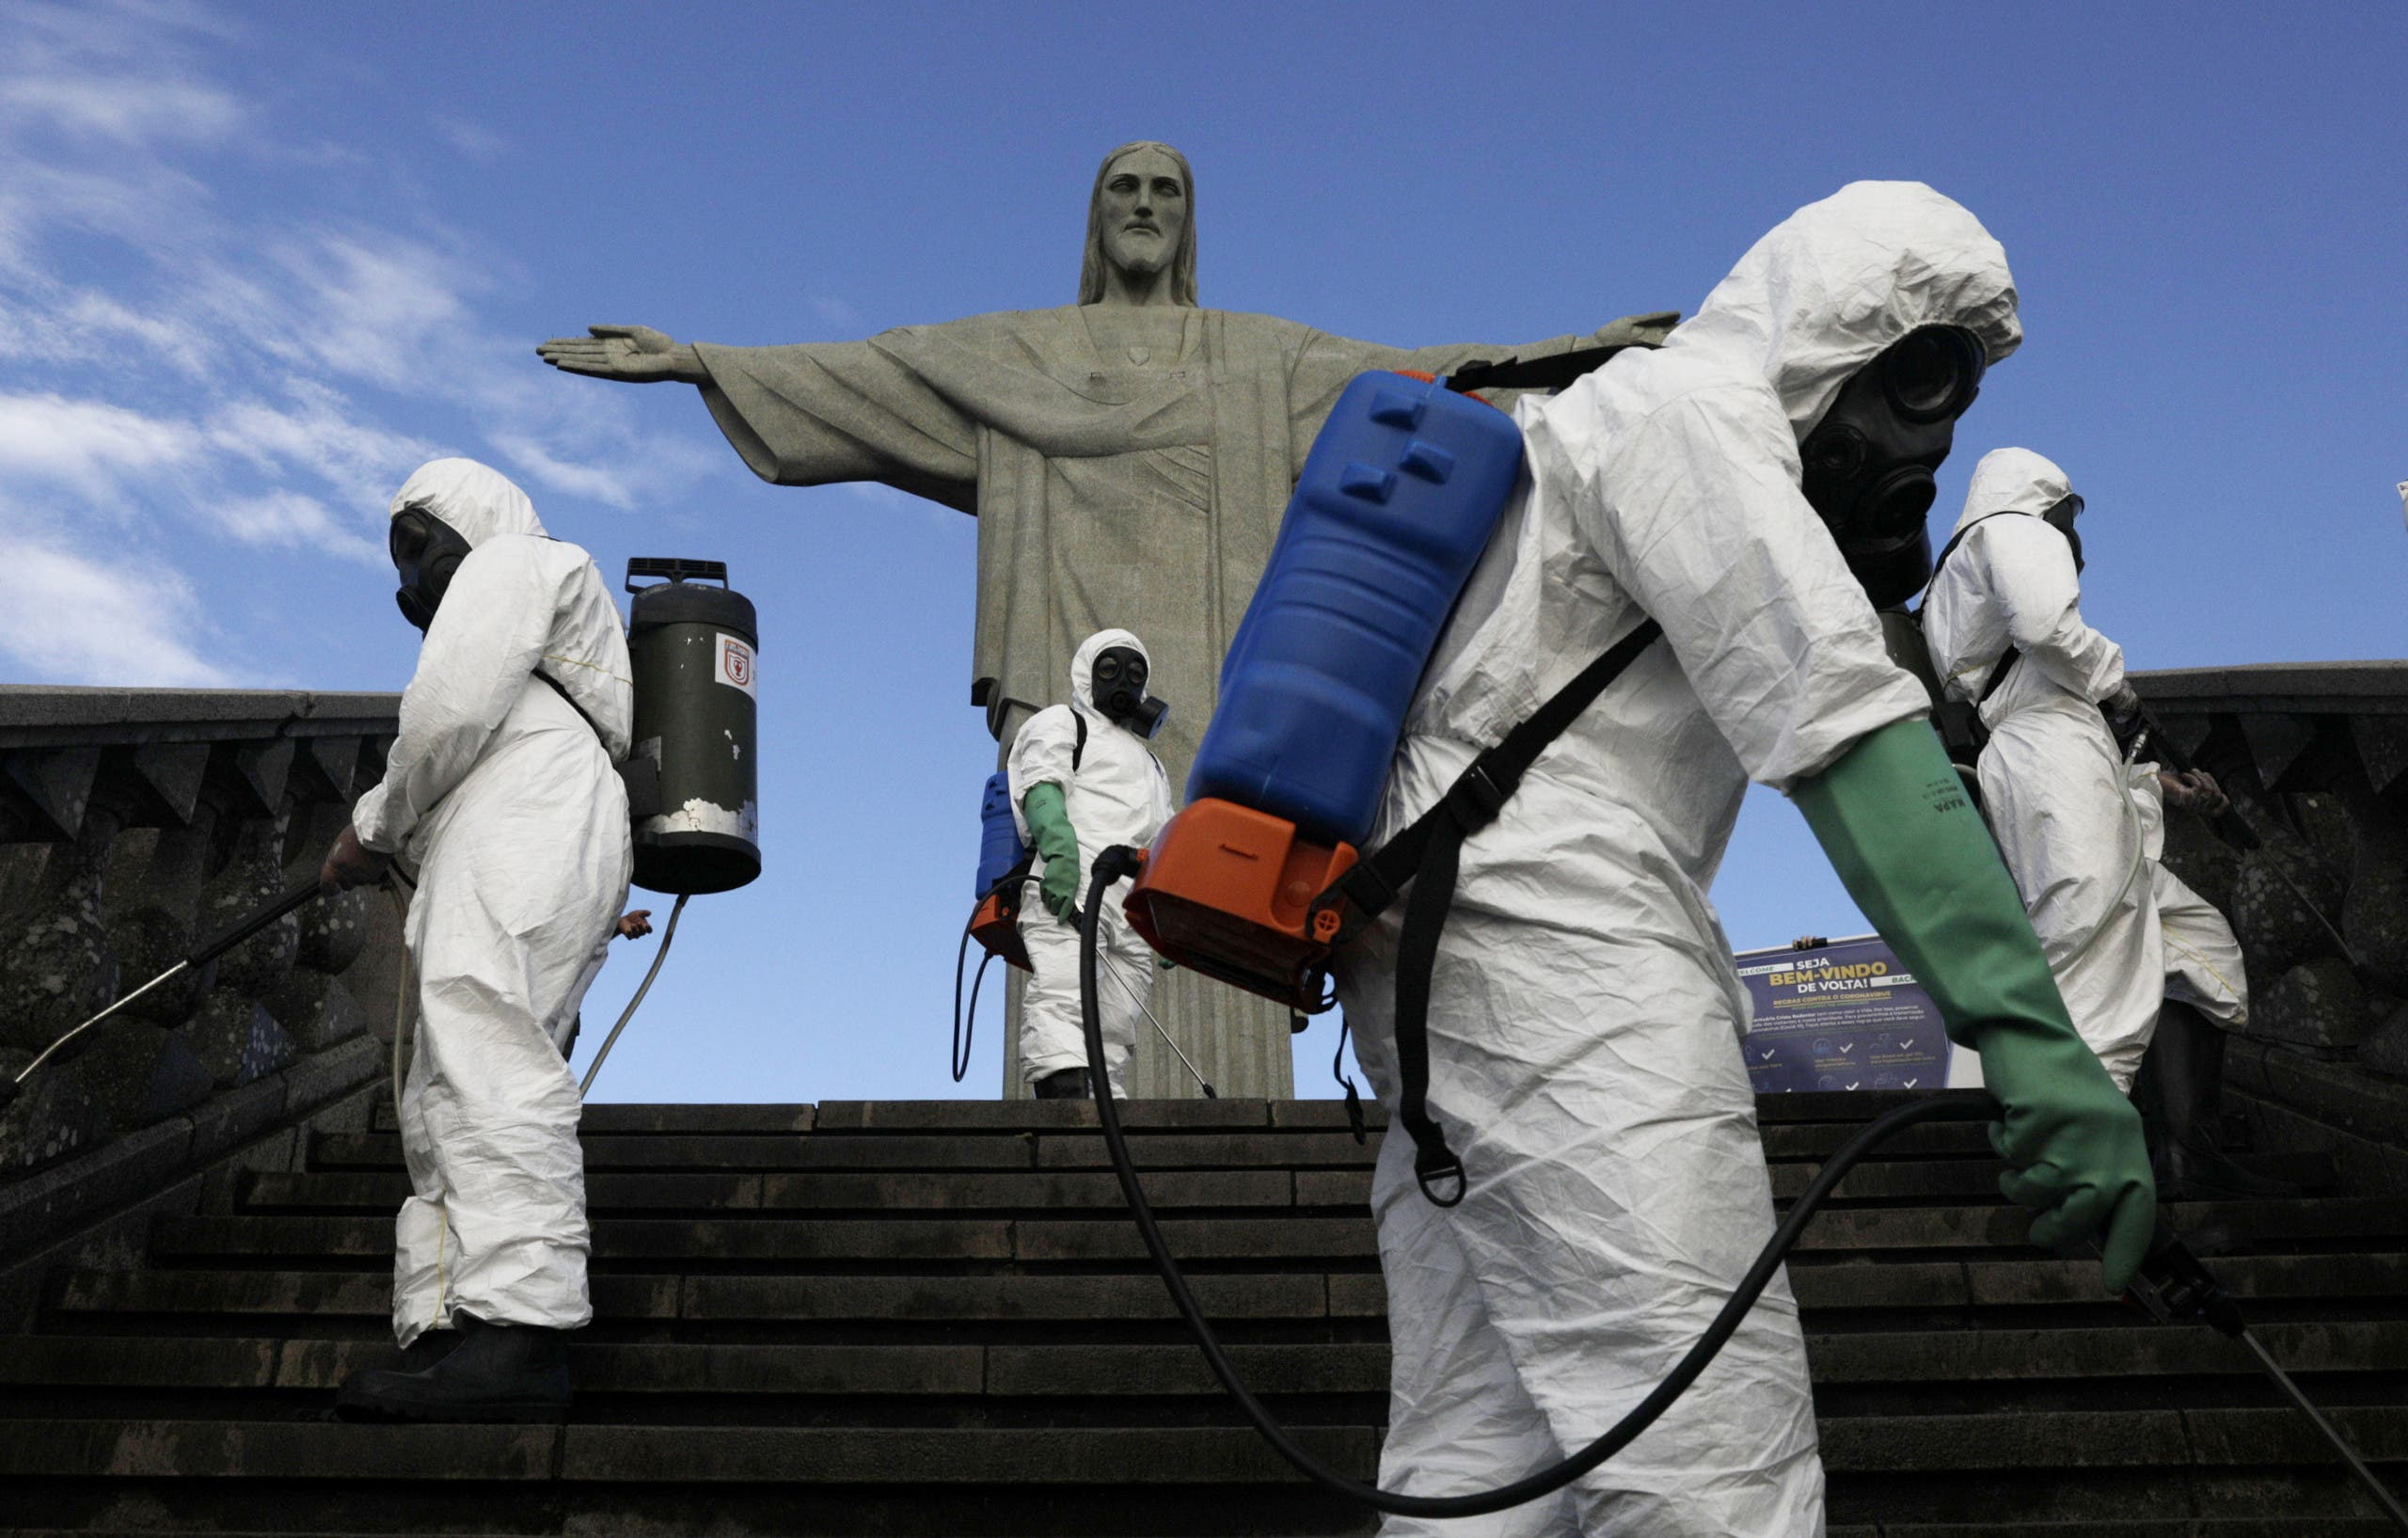 Military members work on disinfection of the Christ the Redeemer statue ahead of its re-opening in Rio de Janeiro, Brazil, August 13, 2020. (Reuters)